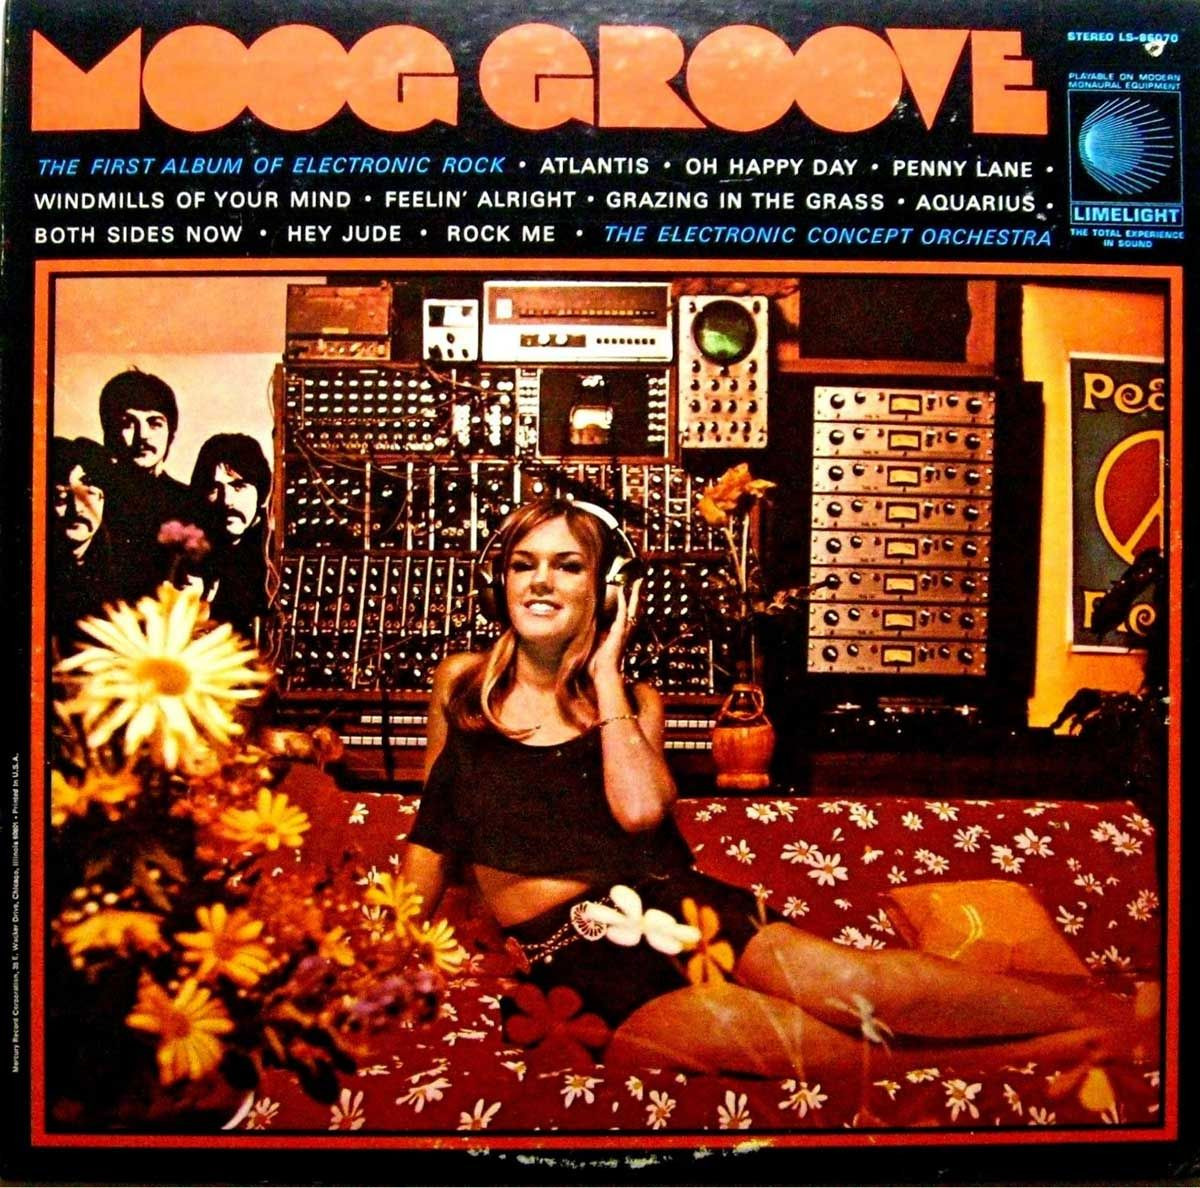 The Electronic Concept Orchestra Moog Groove Limelight Records 1969 One Of Many Records To Come Out Vinyl Music Greatest Album Covers Worst Album Covers